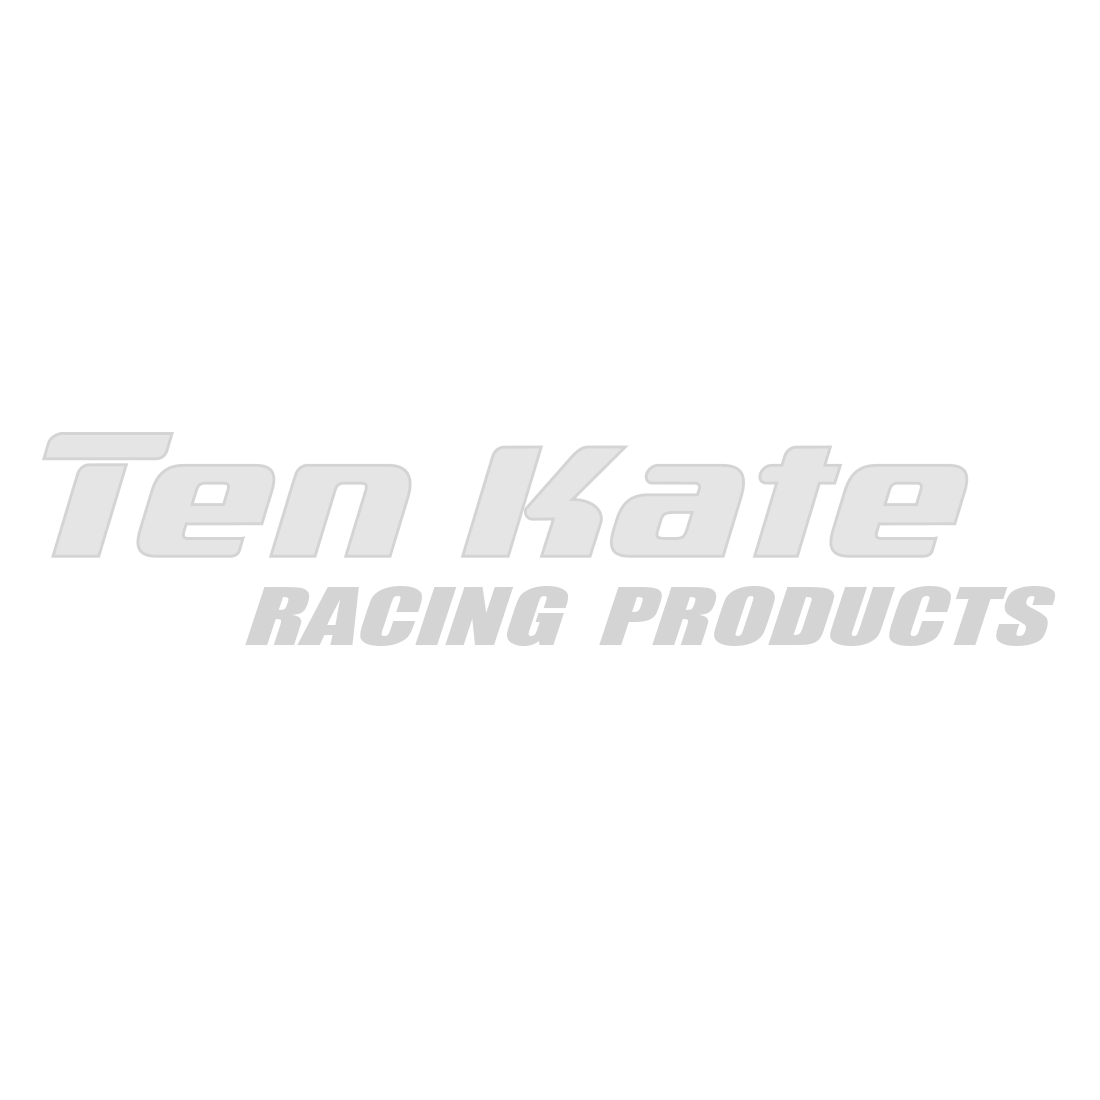 Tenkateracingproducts com   The shop for all your motorcycle track